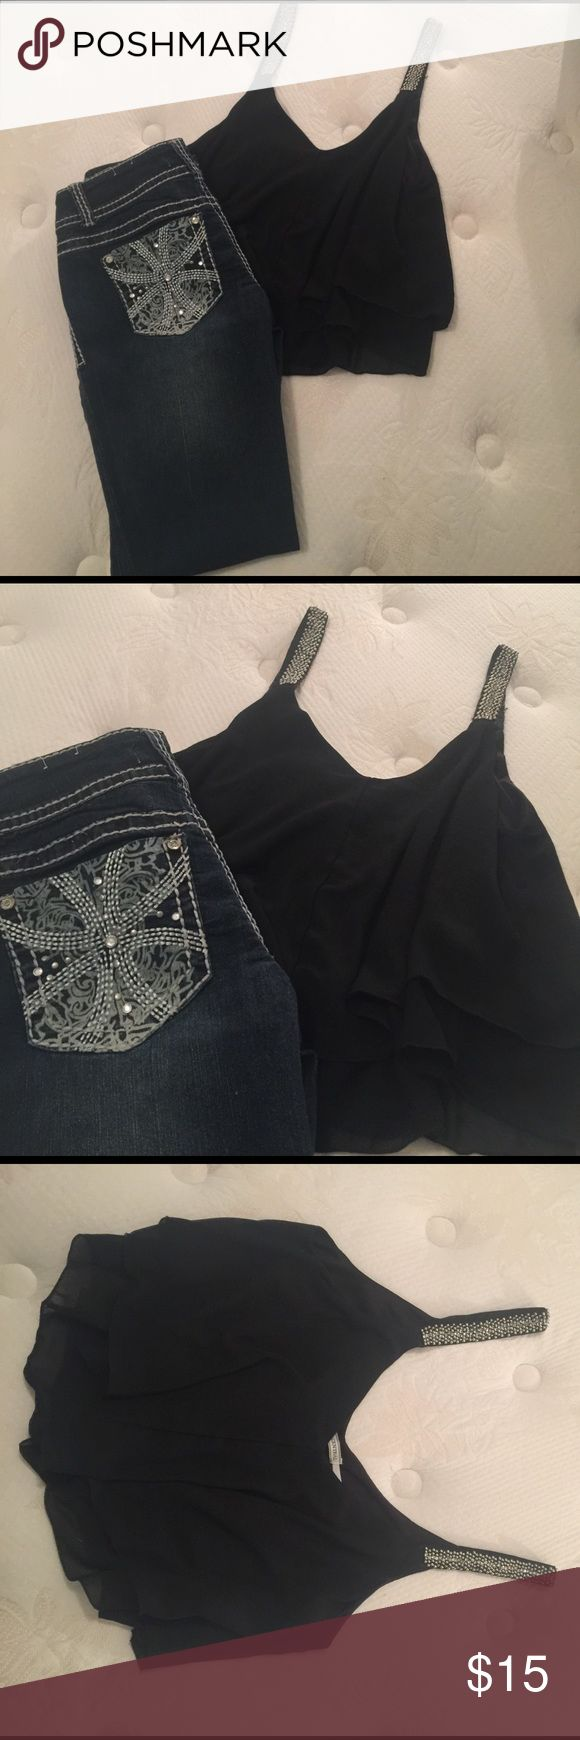 Body Central embellished black shirt and jeans! Body Central embellished black shirt and jeans. The shirt is a size: Xl and the jeans are a size: 9 made by almost famous and straight leg. Great tight stretchy material. Make an offer ❤ Body Central Jeans Ankle & Cropped